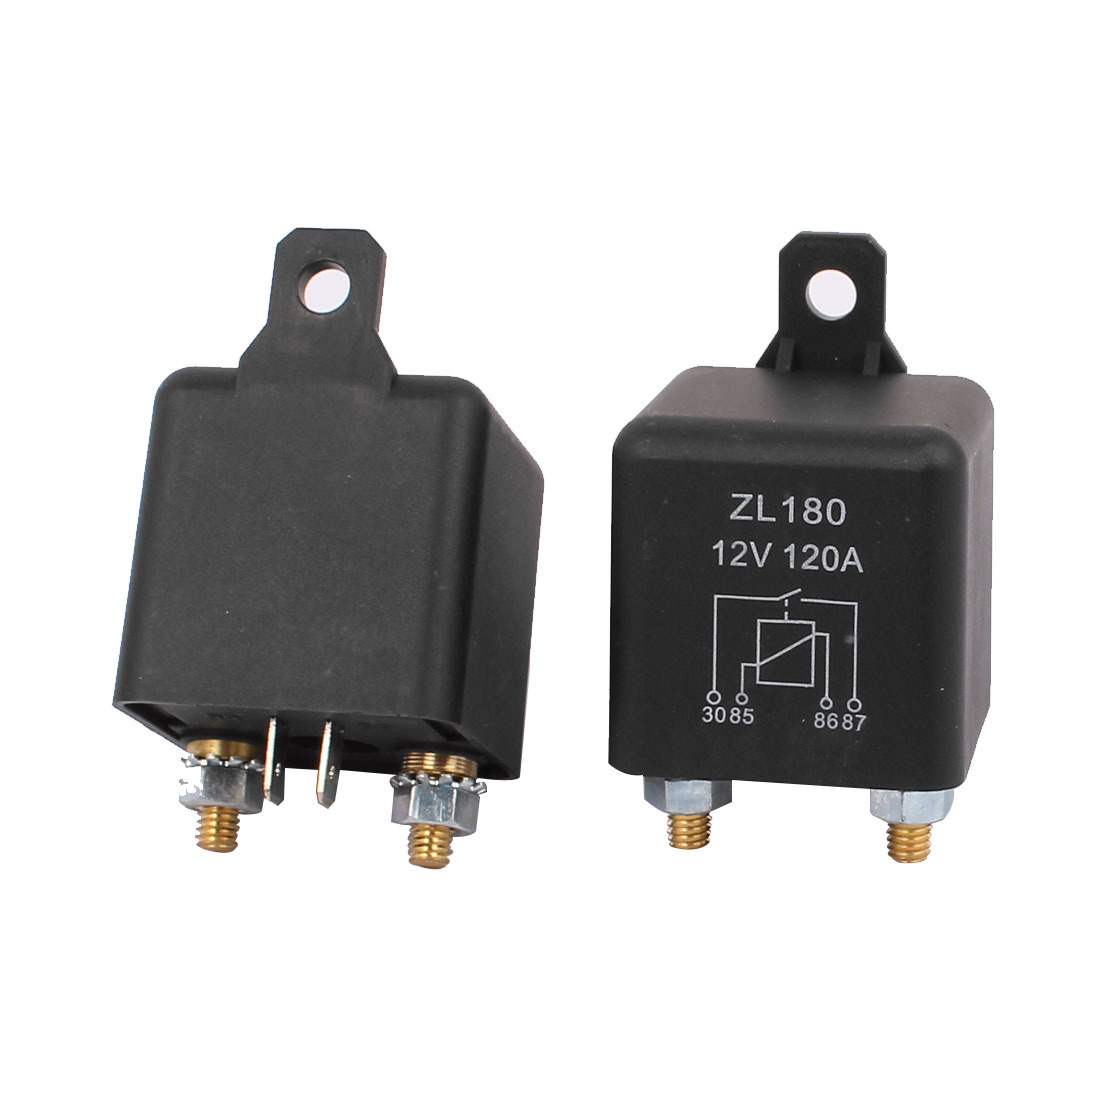 2 Pcs New DC 12V 120A Large Current Split Charge Power Relay Car Truck Boat